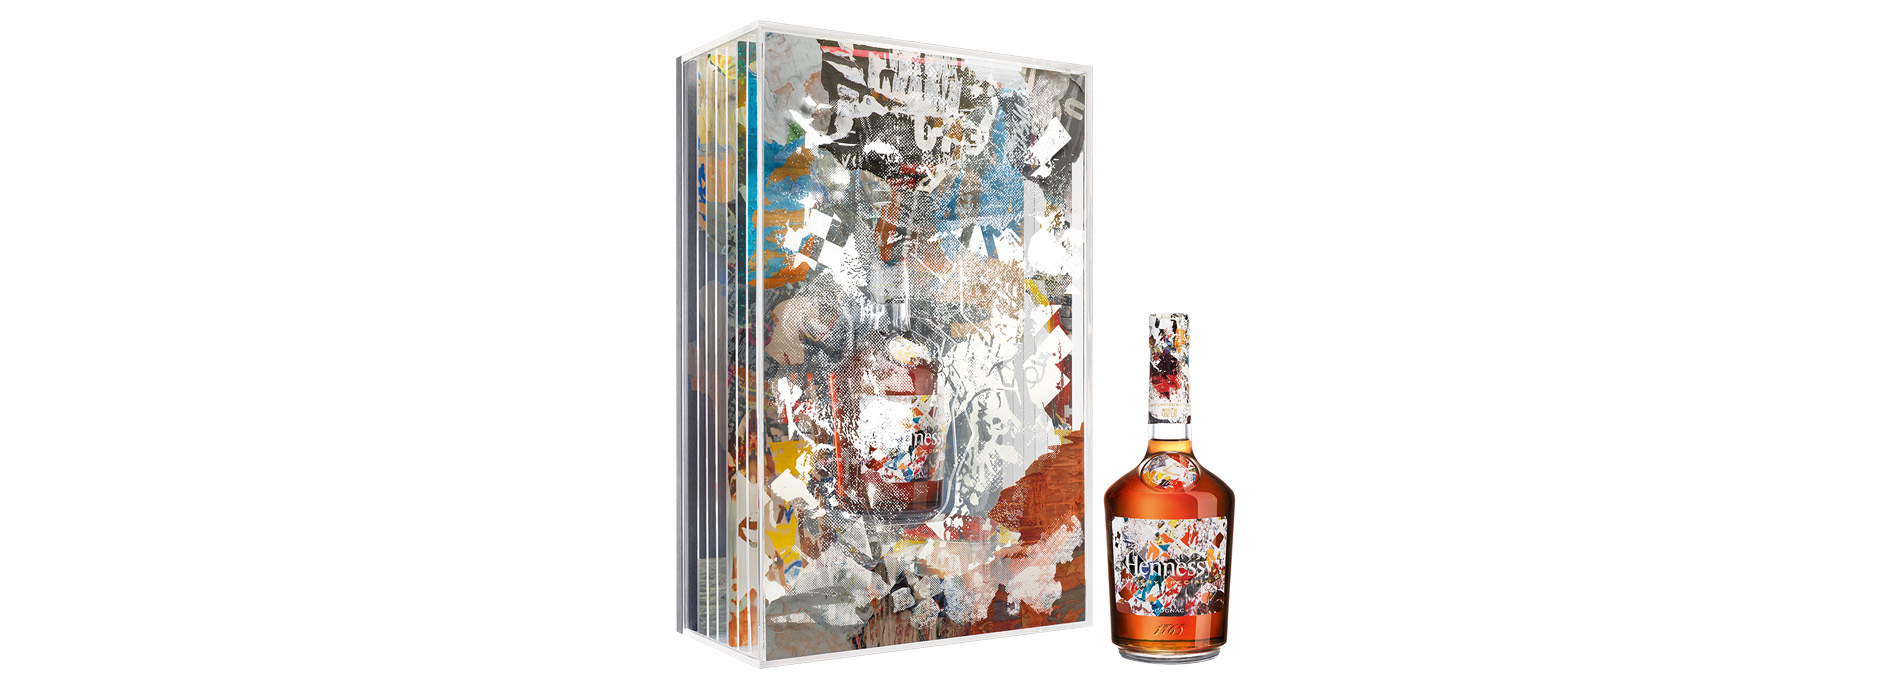 Hennessy bottle design Edition By Vhils